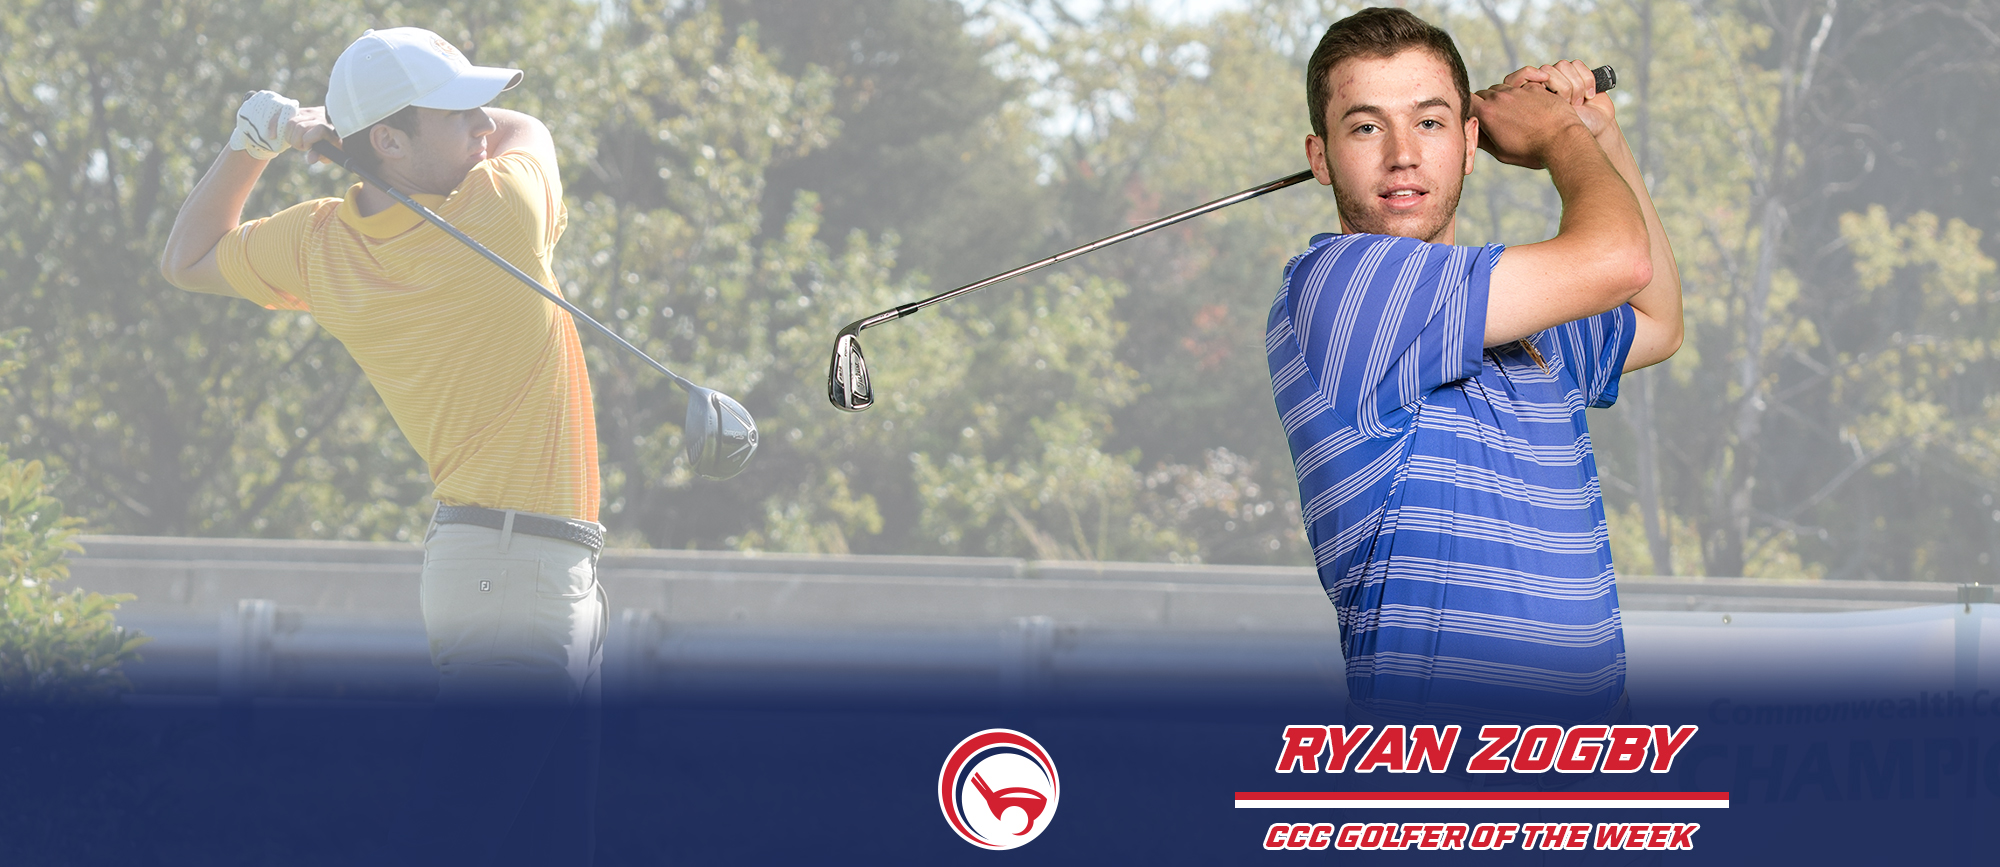 Ryan Zogby Earns Third CCC Golfer of the Week Award